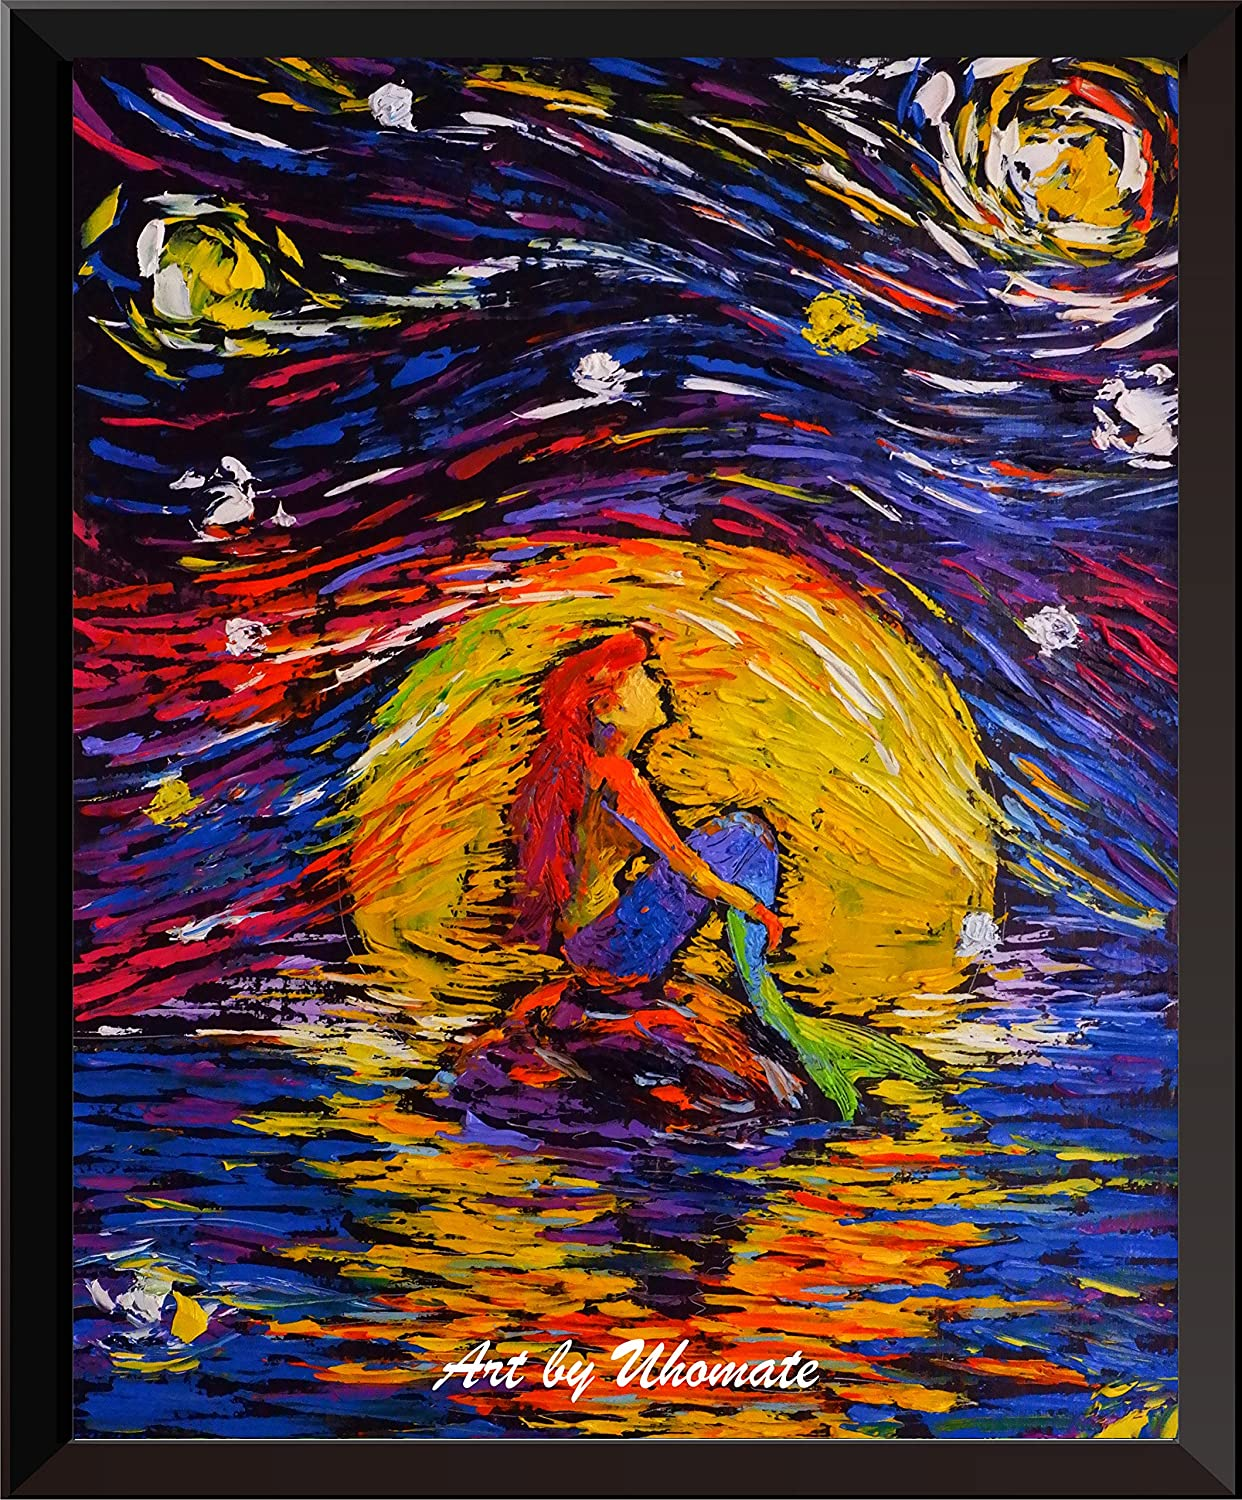 Amazon.com: Uhomate Vincent Van Gogh Starry Night Posters Ariel ...